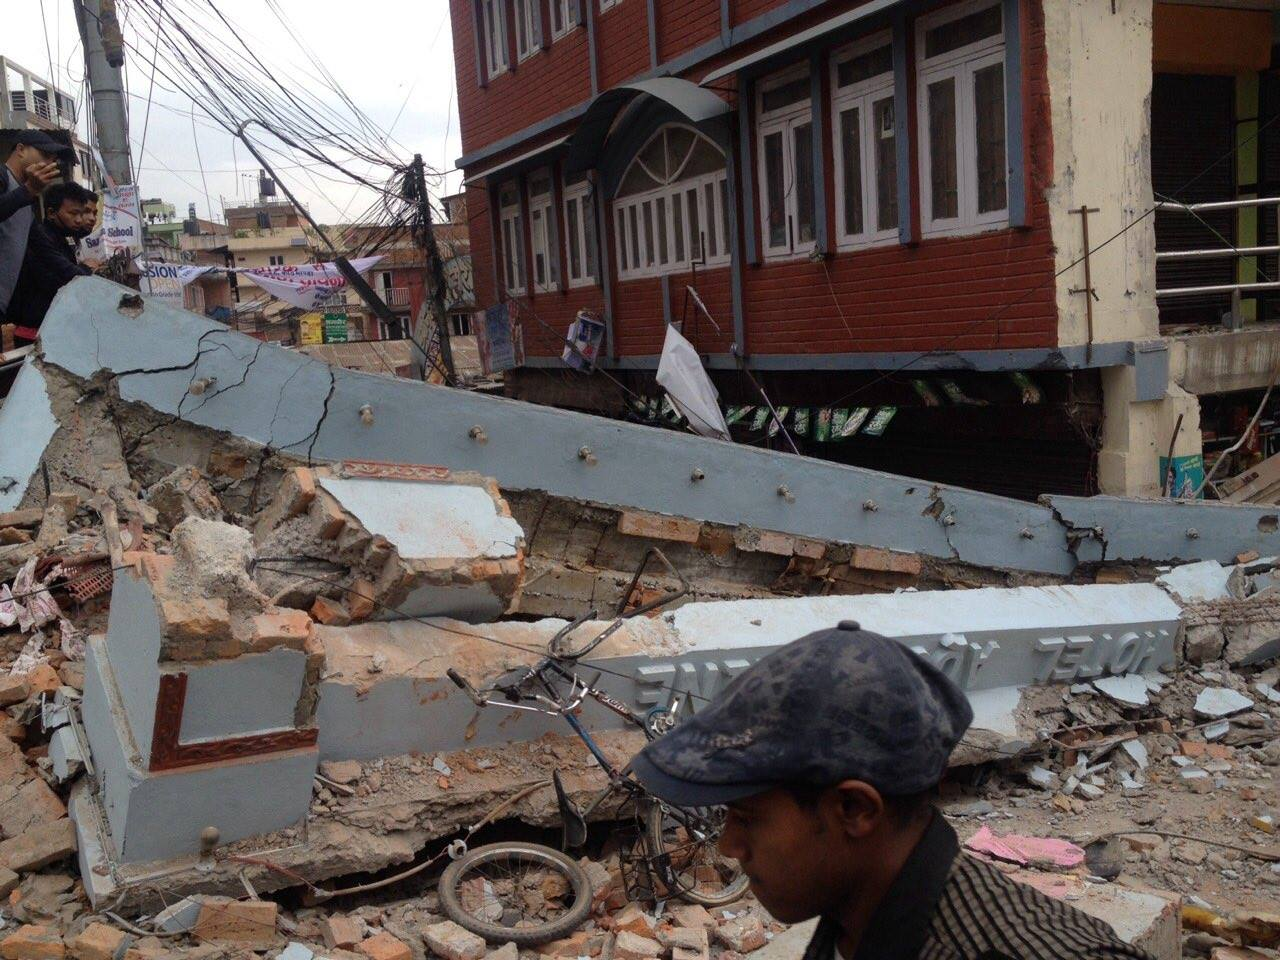 Nsf Awards Grants For Study Of Nepal Earthquake All Images Nsf National Science Foundation